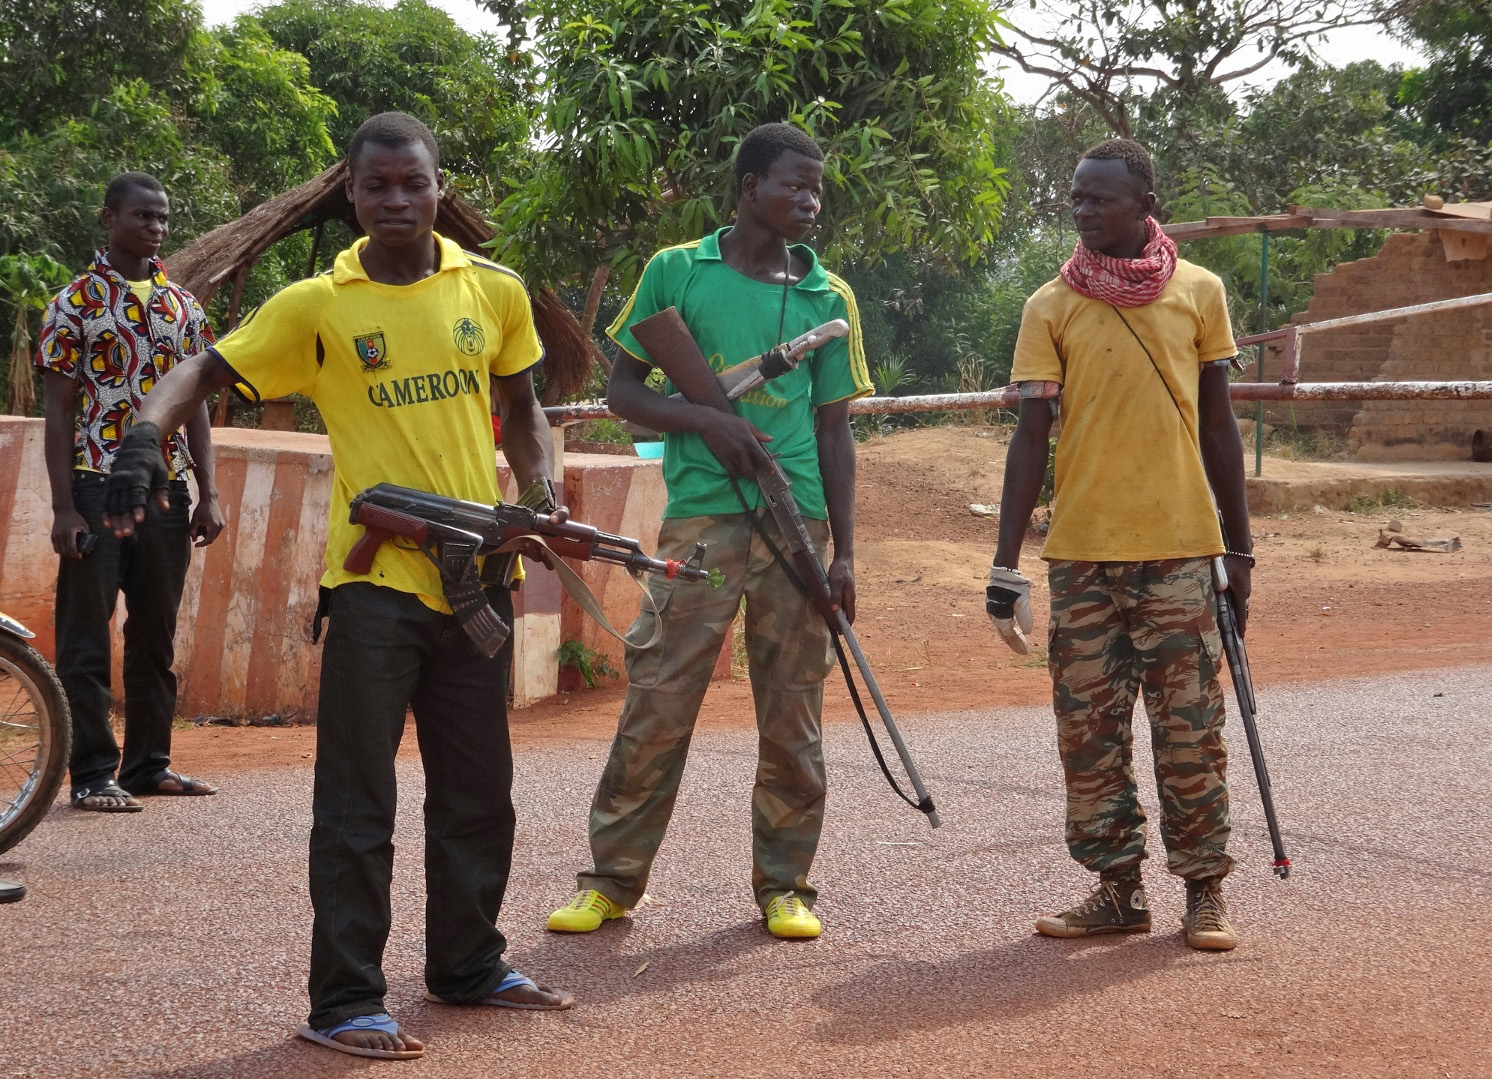 Anti-balaka militia in Bangui, CAR